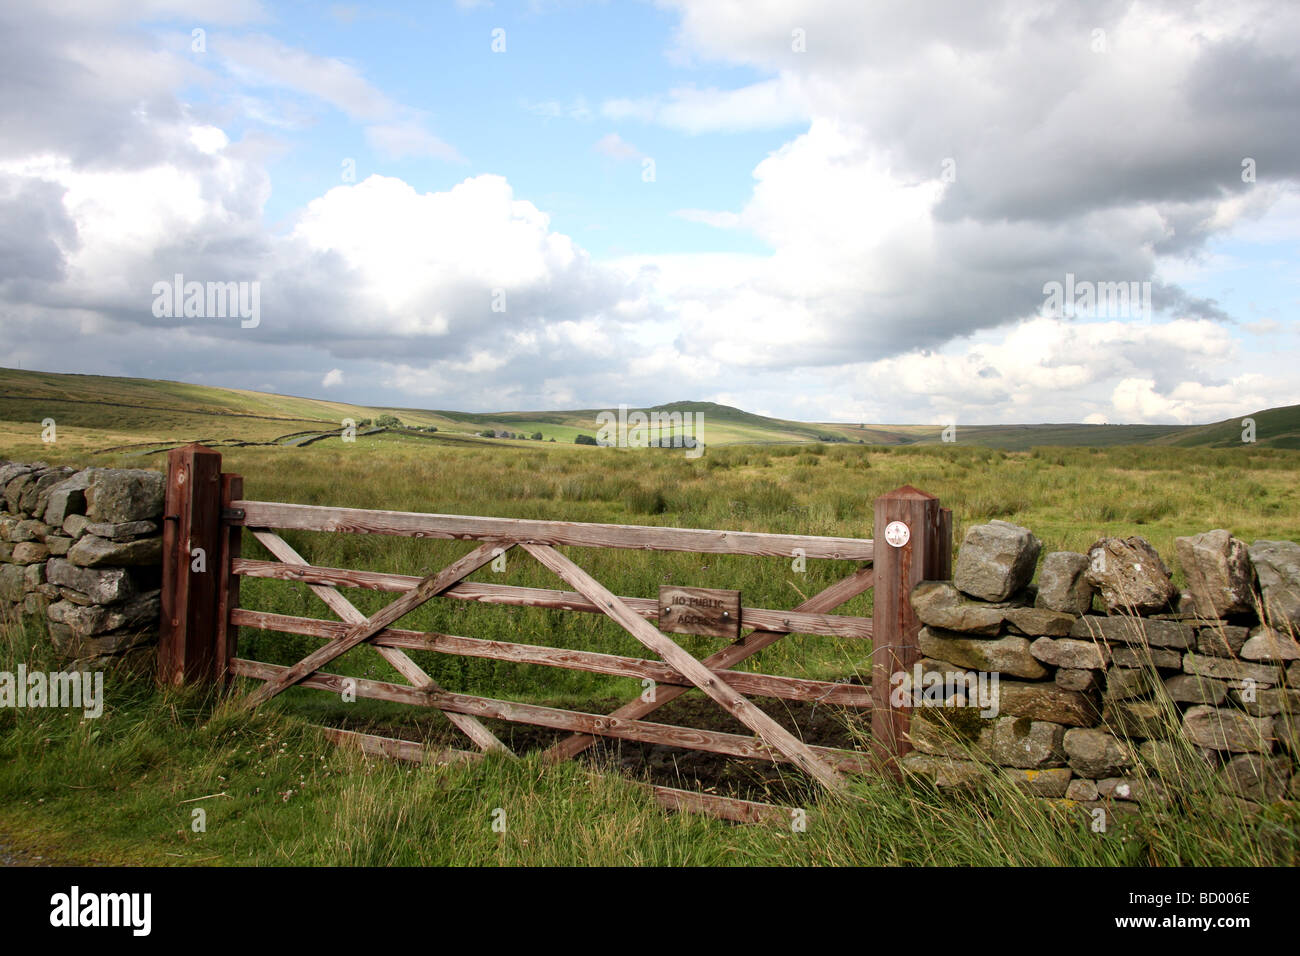 No Public Access sign on wooden 5 bar gate, on moors above Appletreewick, North Yorkshire - Stock Image